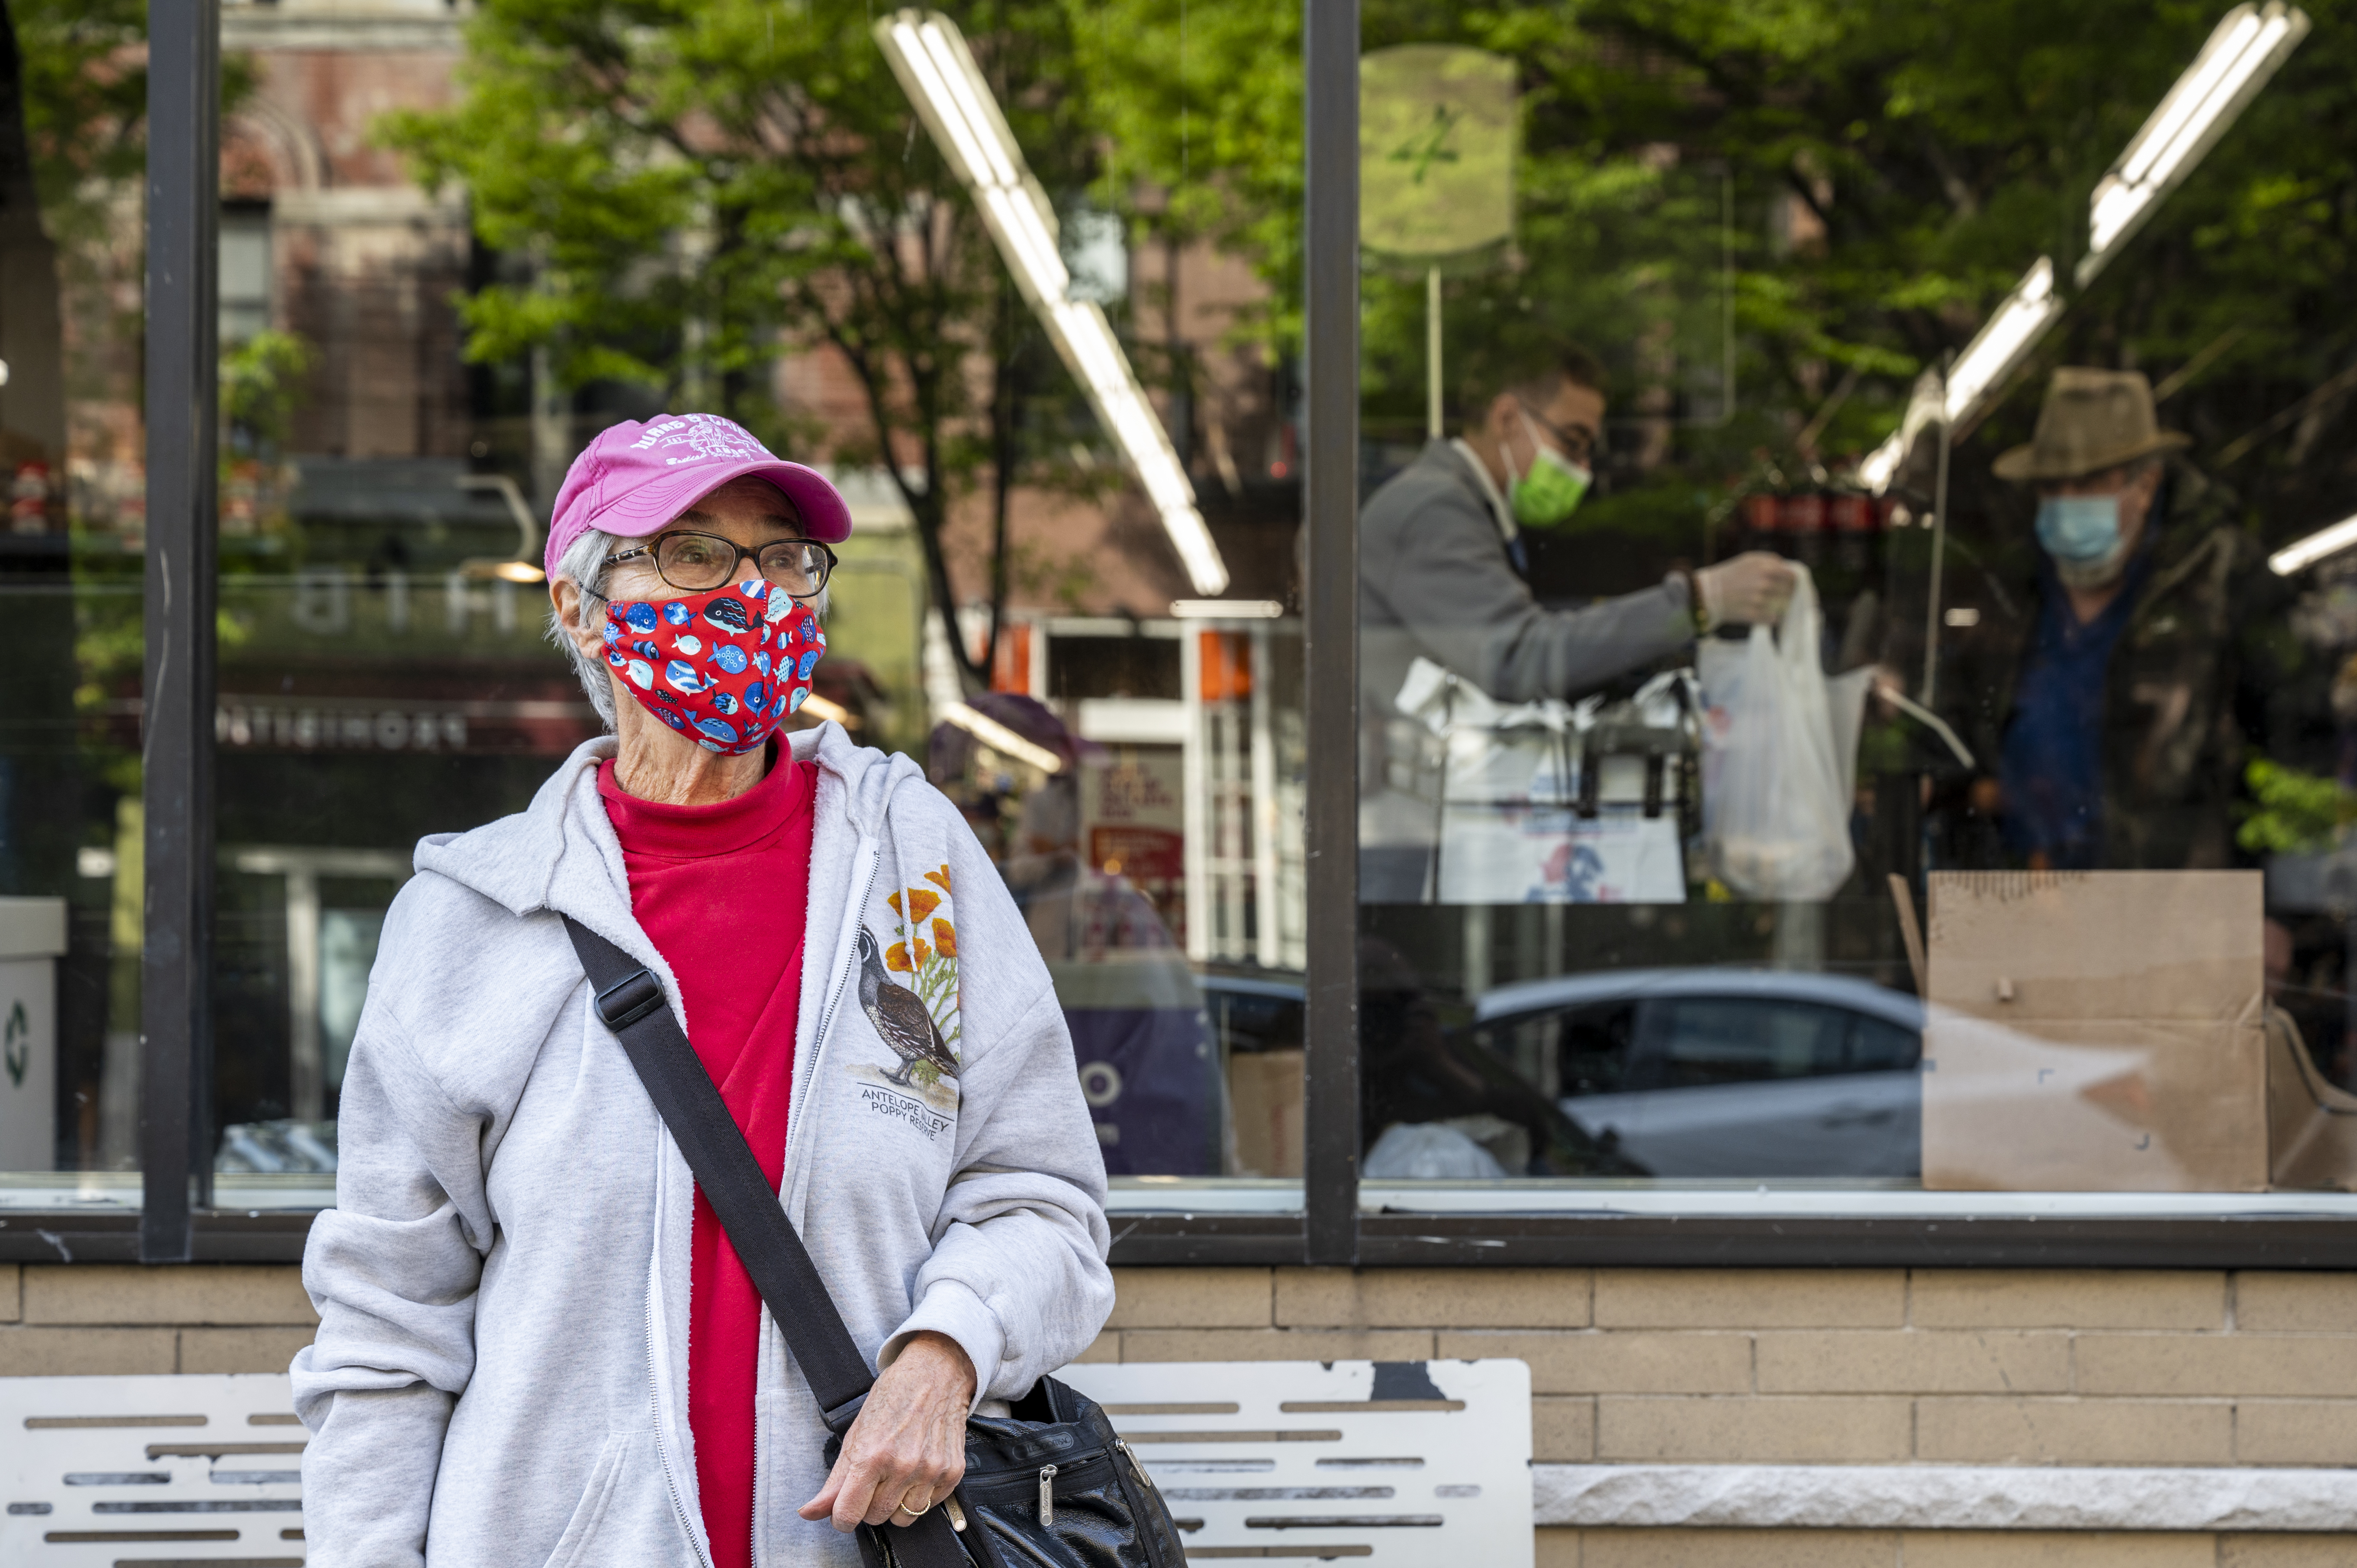 Judith Weis poses for a portrait outside of Gristedes in the Upper West Side where she has observed the staff ignoring the plastic bag ban implemented in 2020.